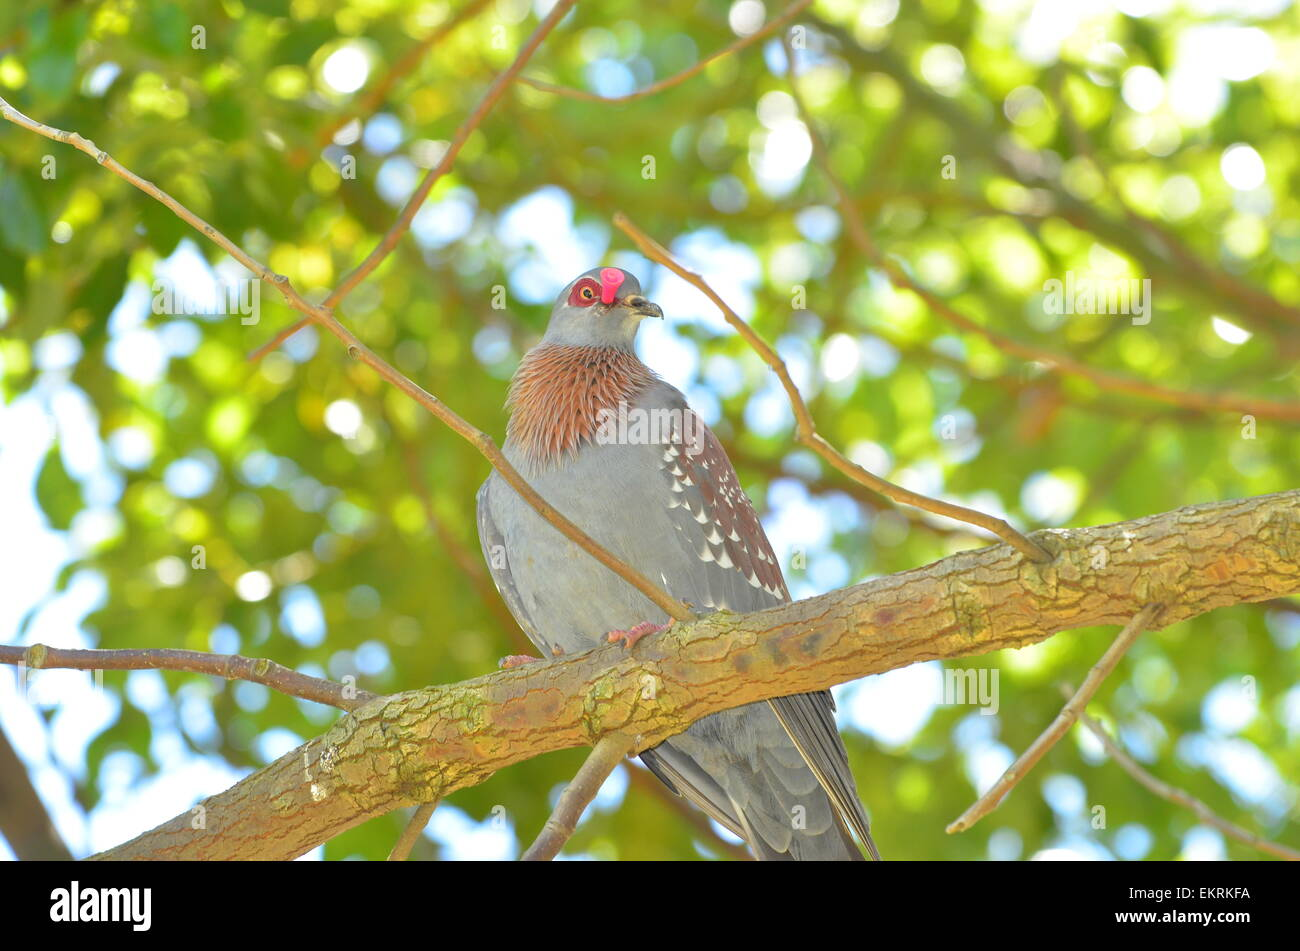 Rock pigeon or speckled pigeon with arrow stuck in its head. - Stock Image